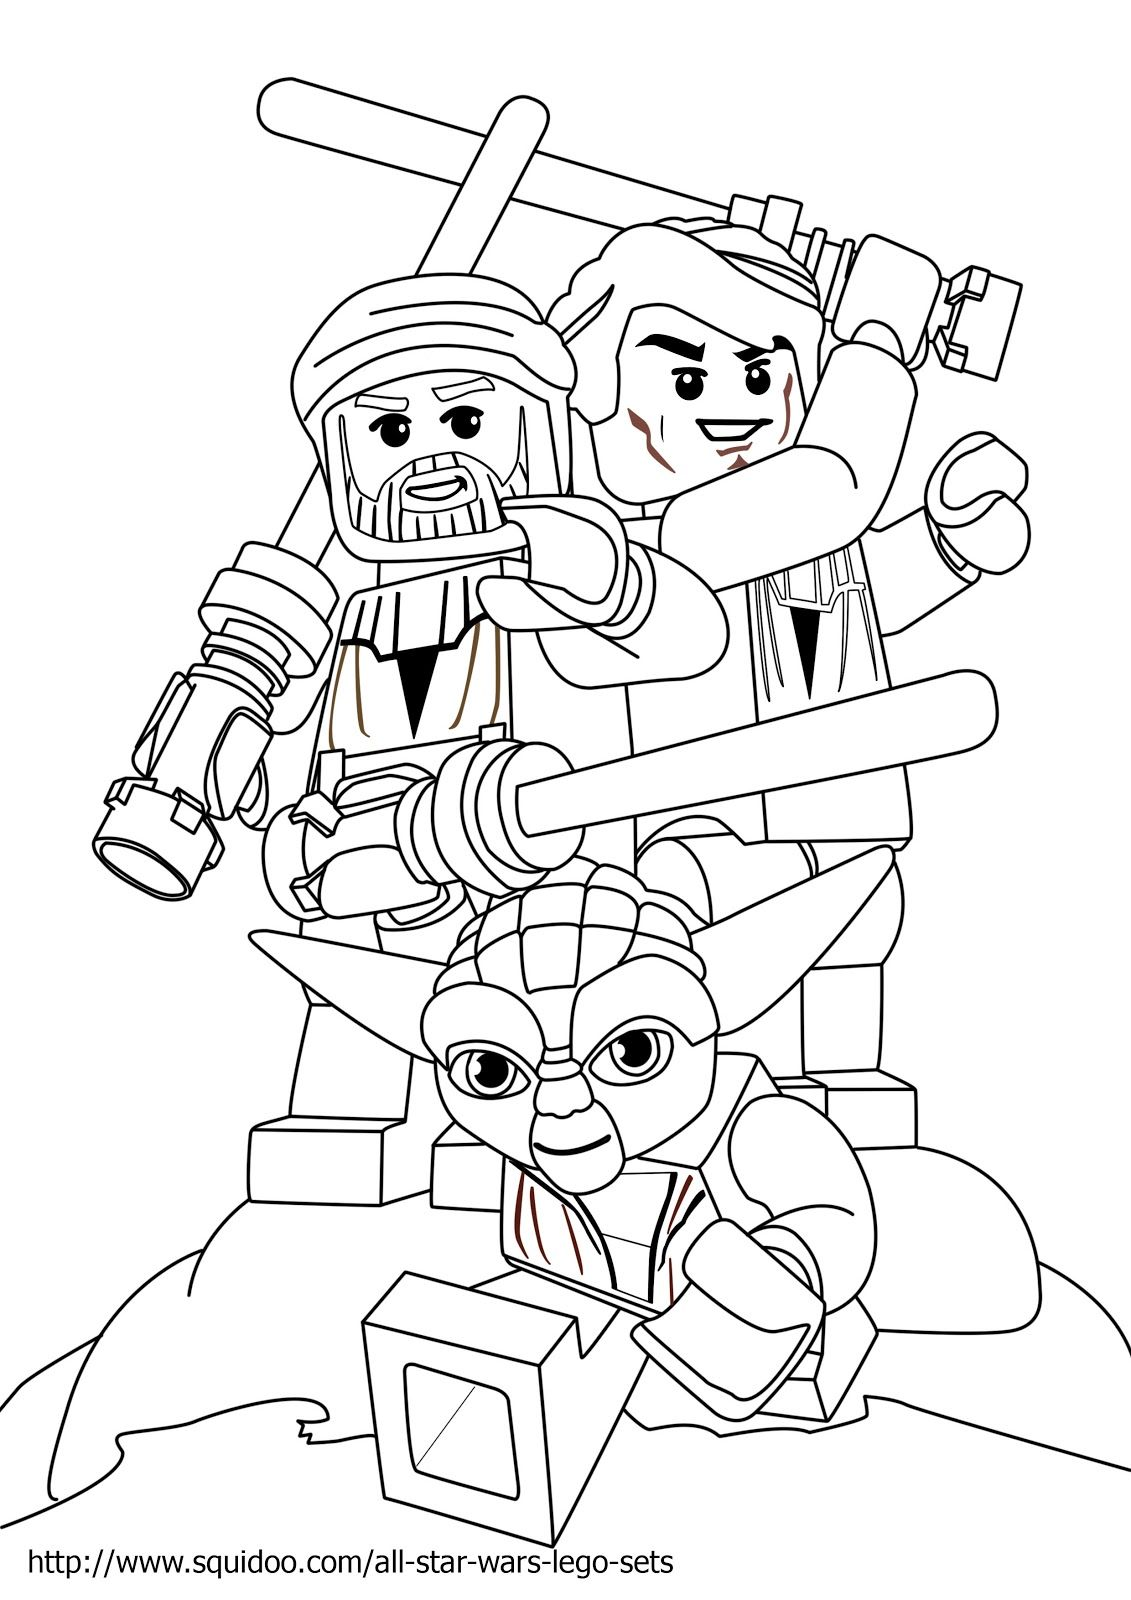 Lego Star Wars Yoda Coloring Pages Original size: 1131 x 1600 ...